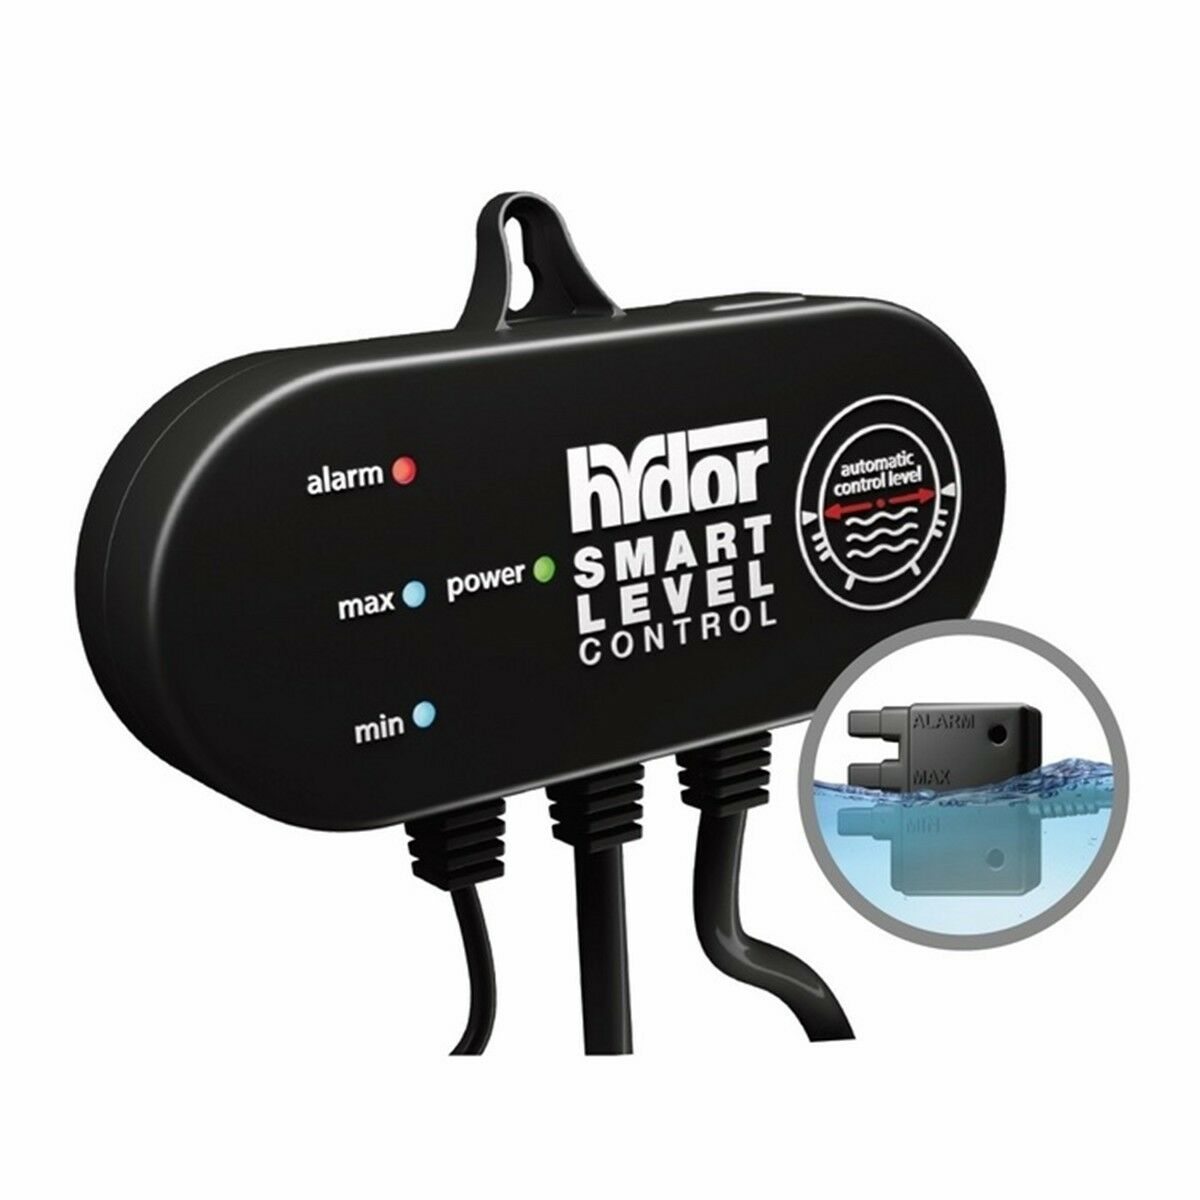 Hydor Smart Level Controller Auto Top-Up System  For Topping Up Your Tank Safely